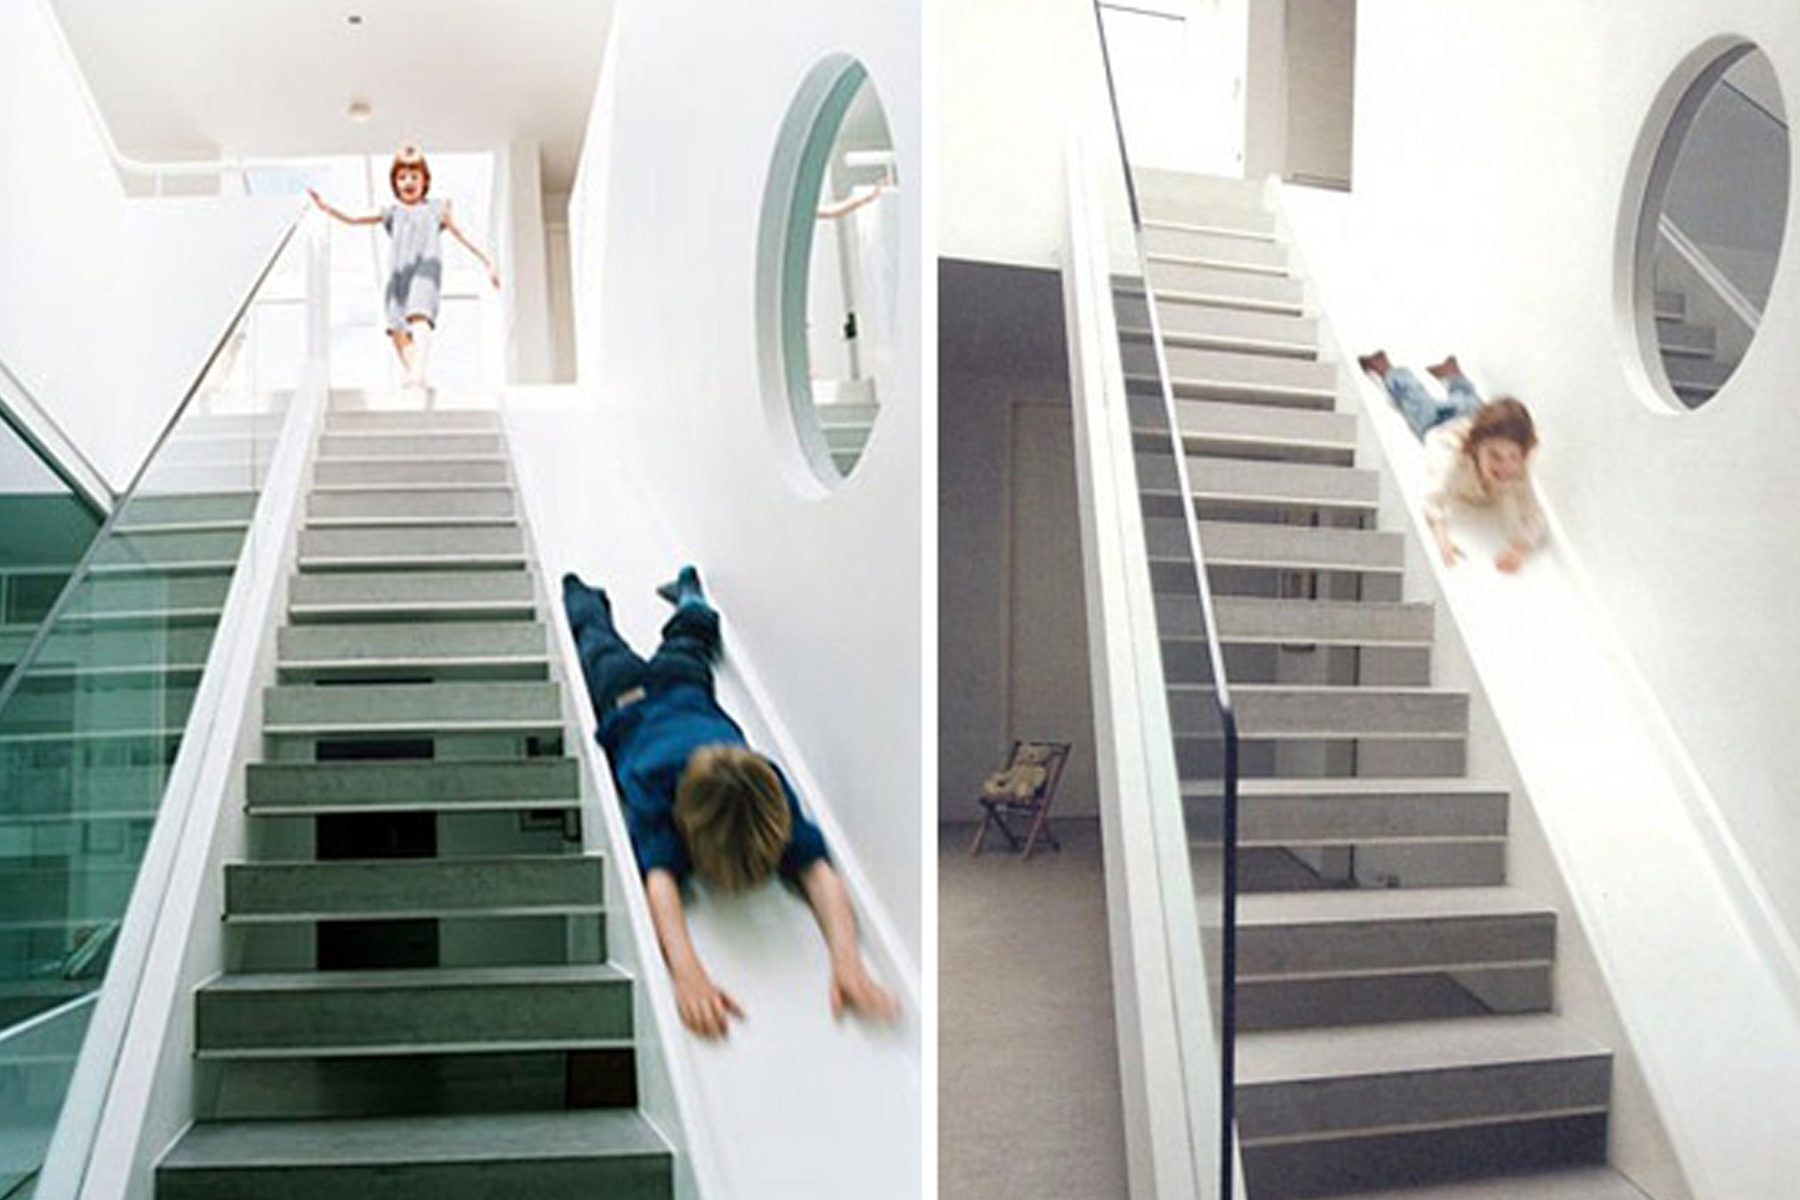 Las escaleras mas hermosas y creativas del mundo for Escaleras internas de casa